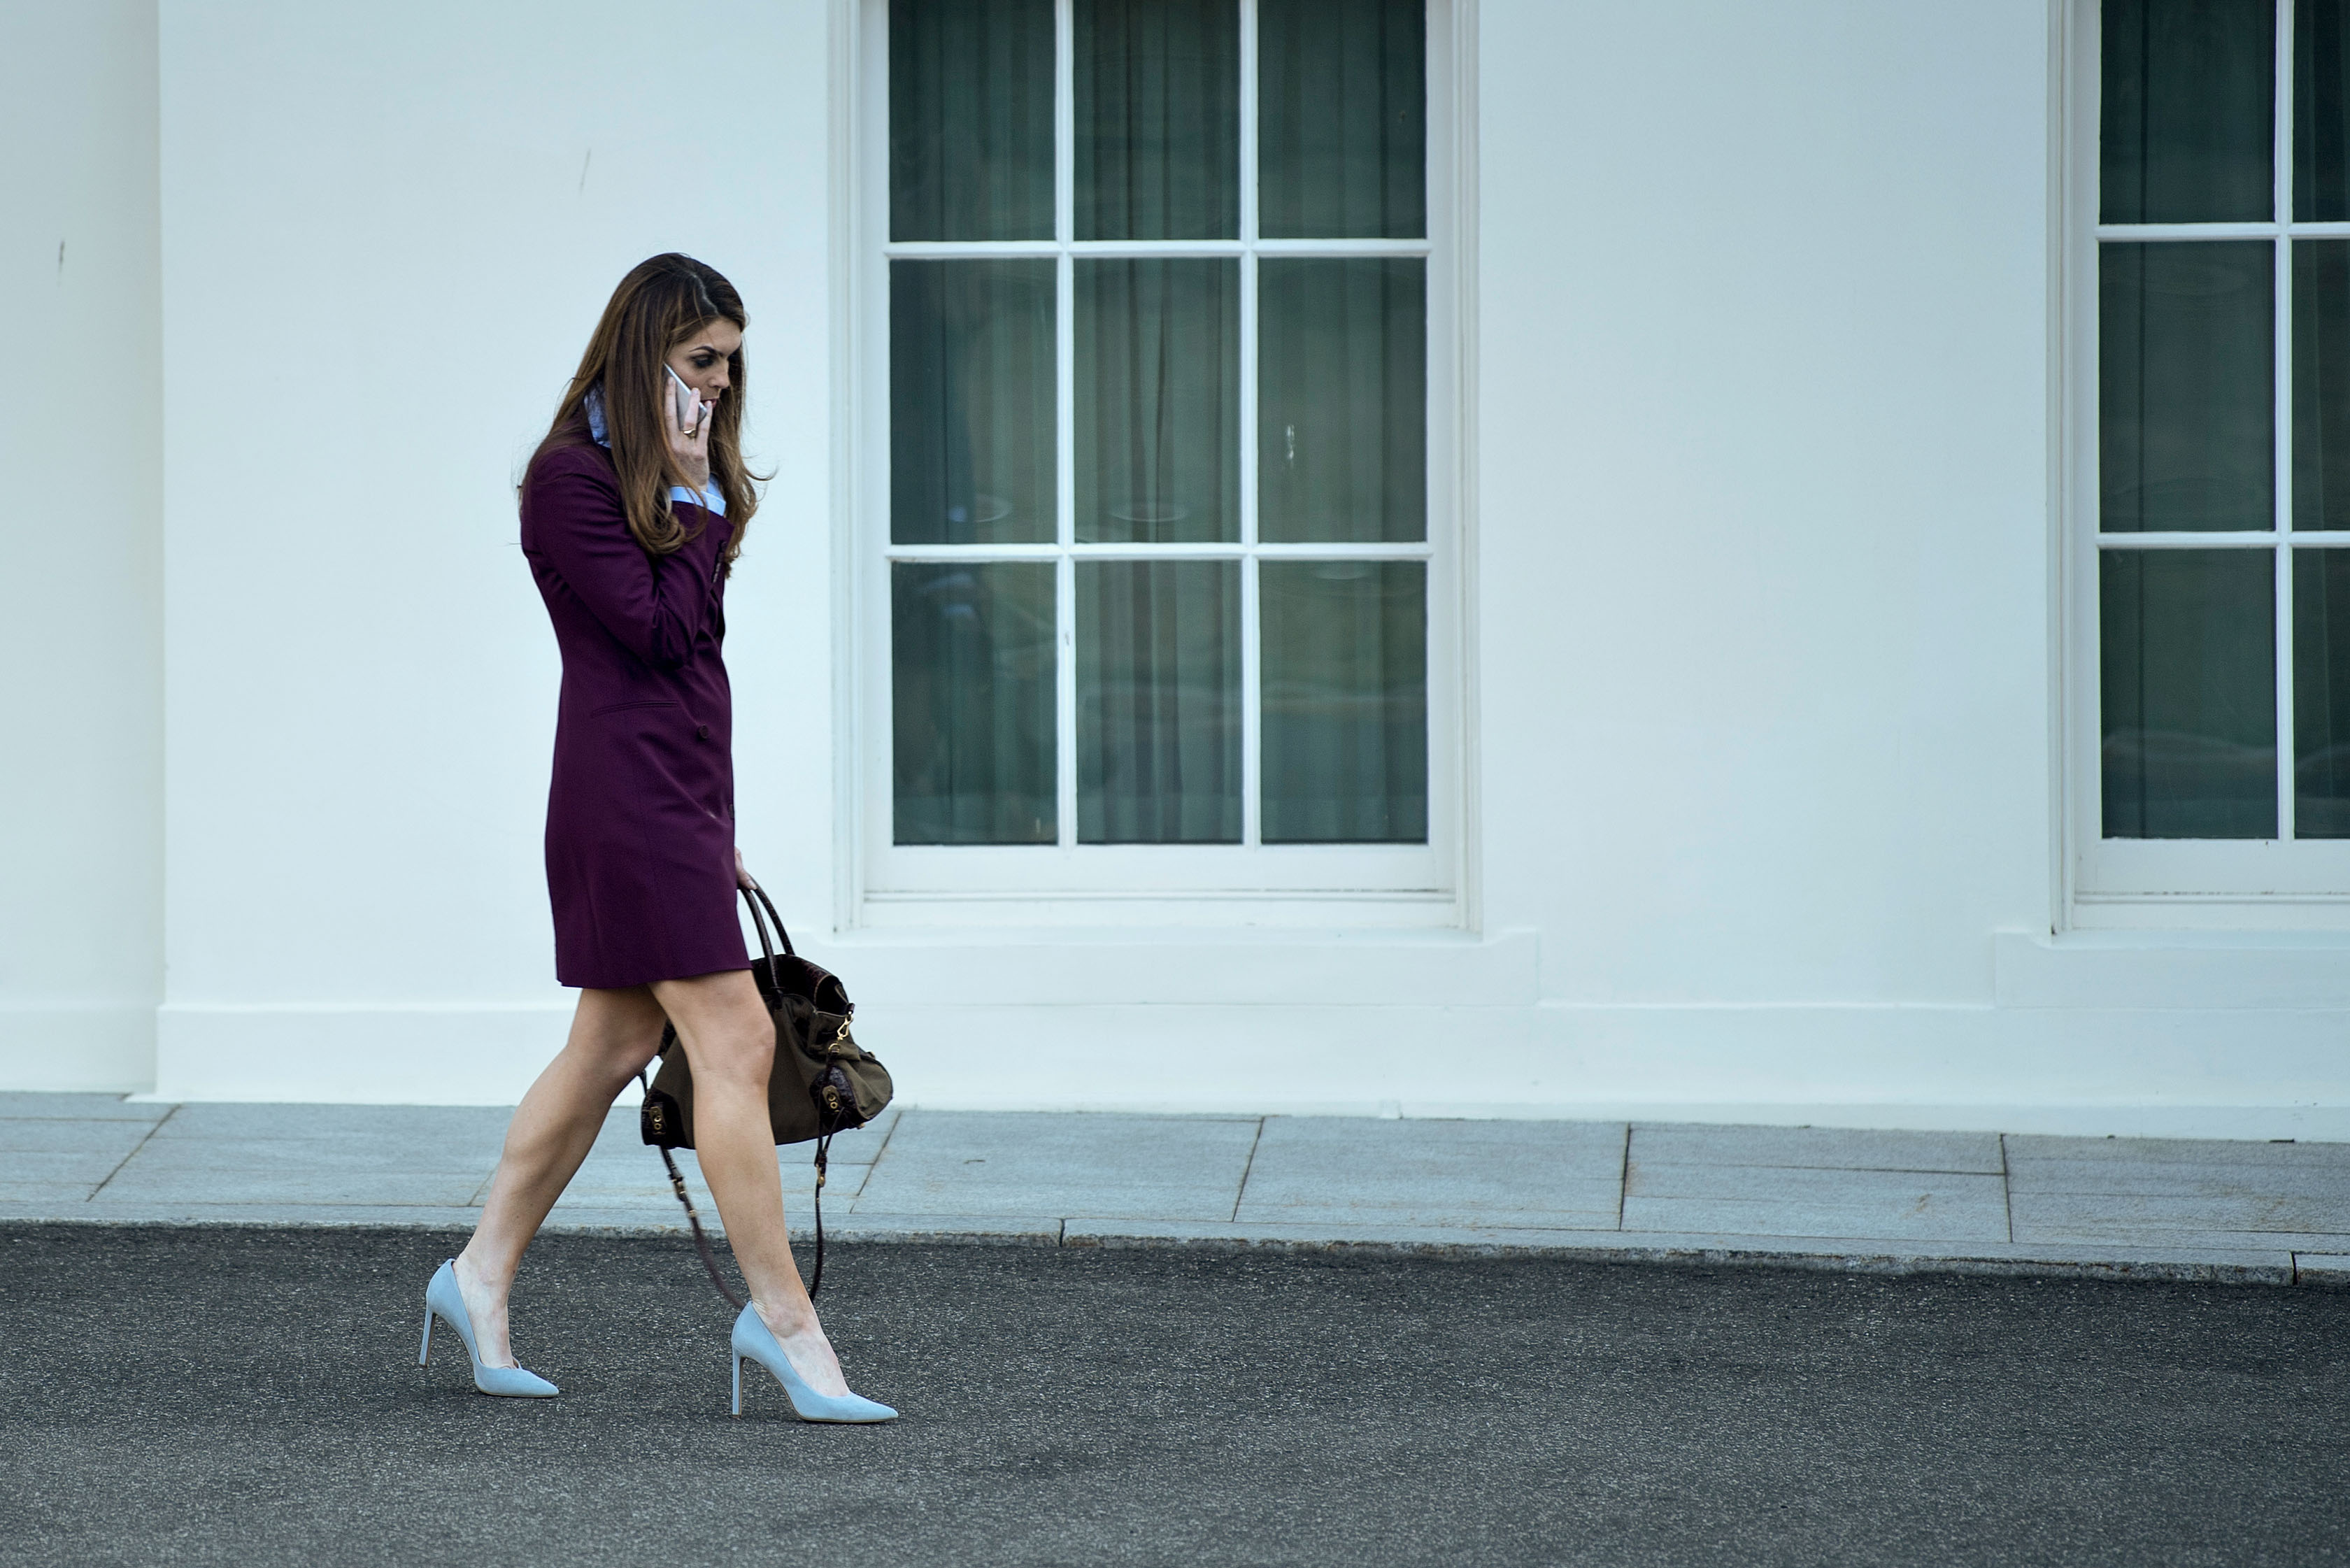 Hope Hicks leaves the White House on March 16, 2018. (Brendan Smialowski/AFP/Getty Images)